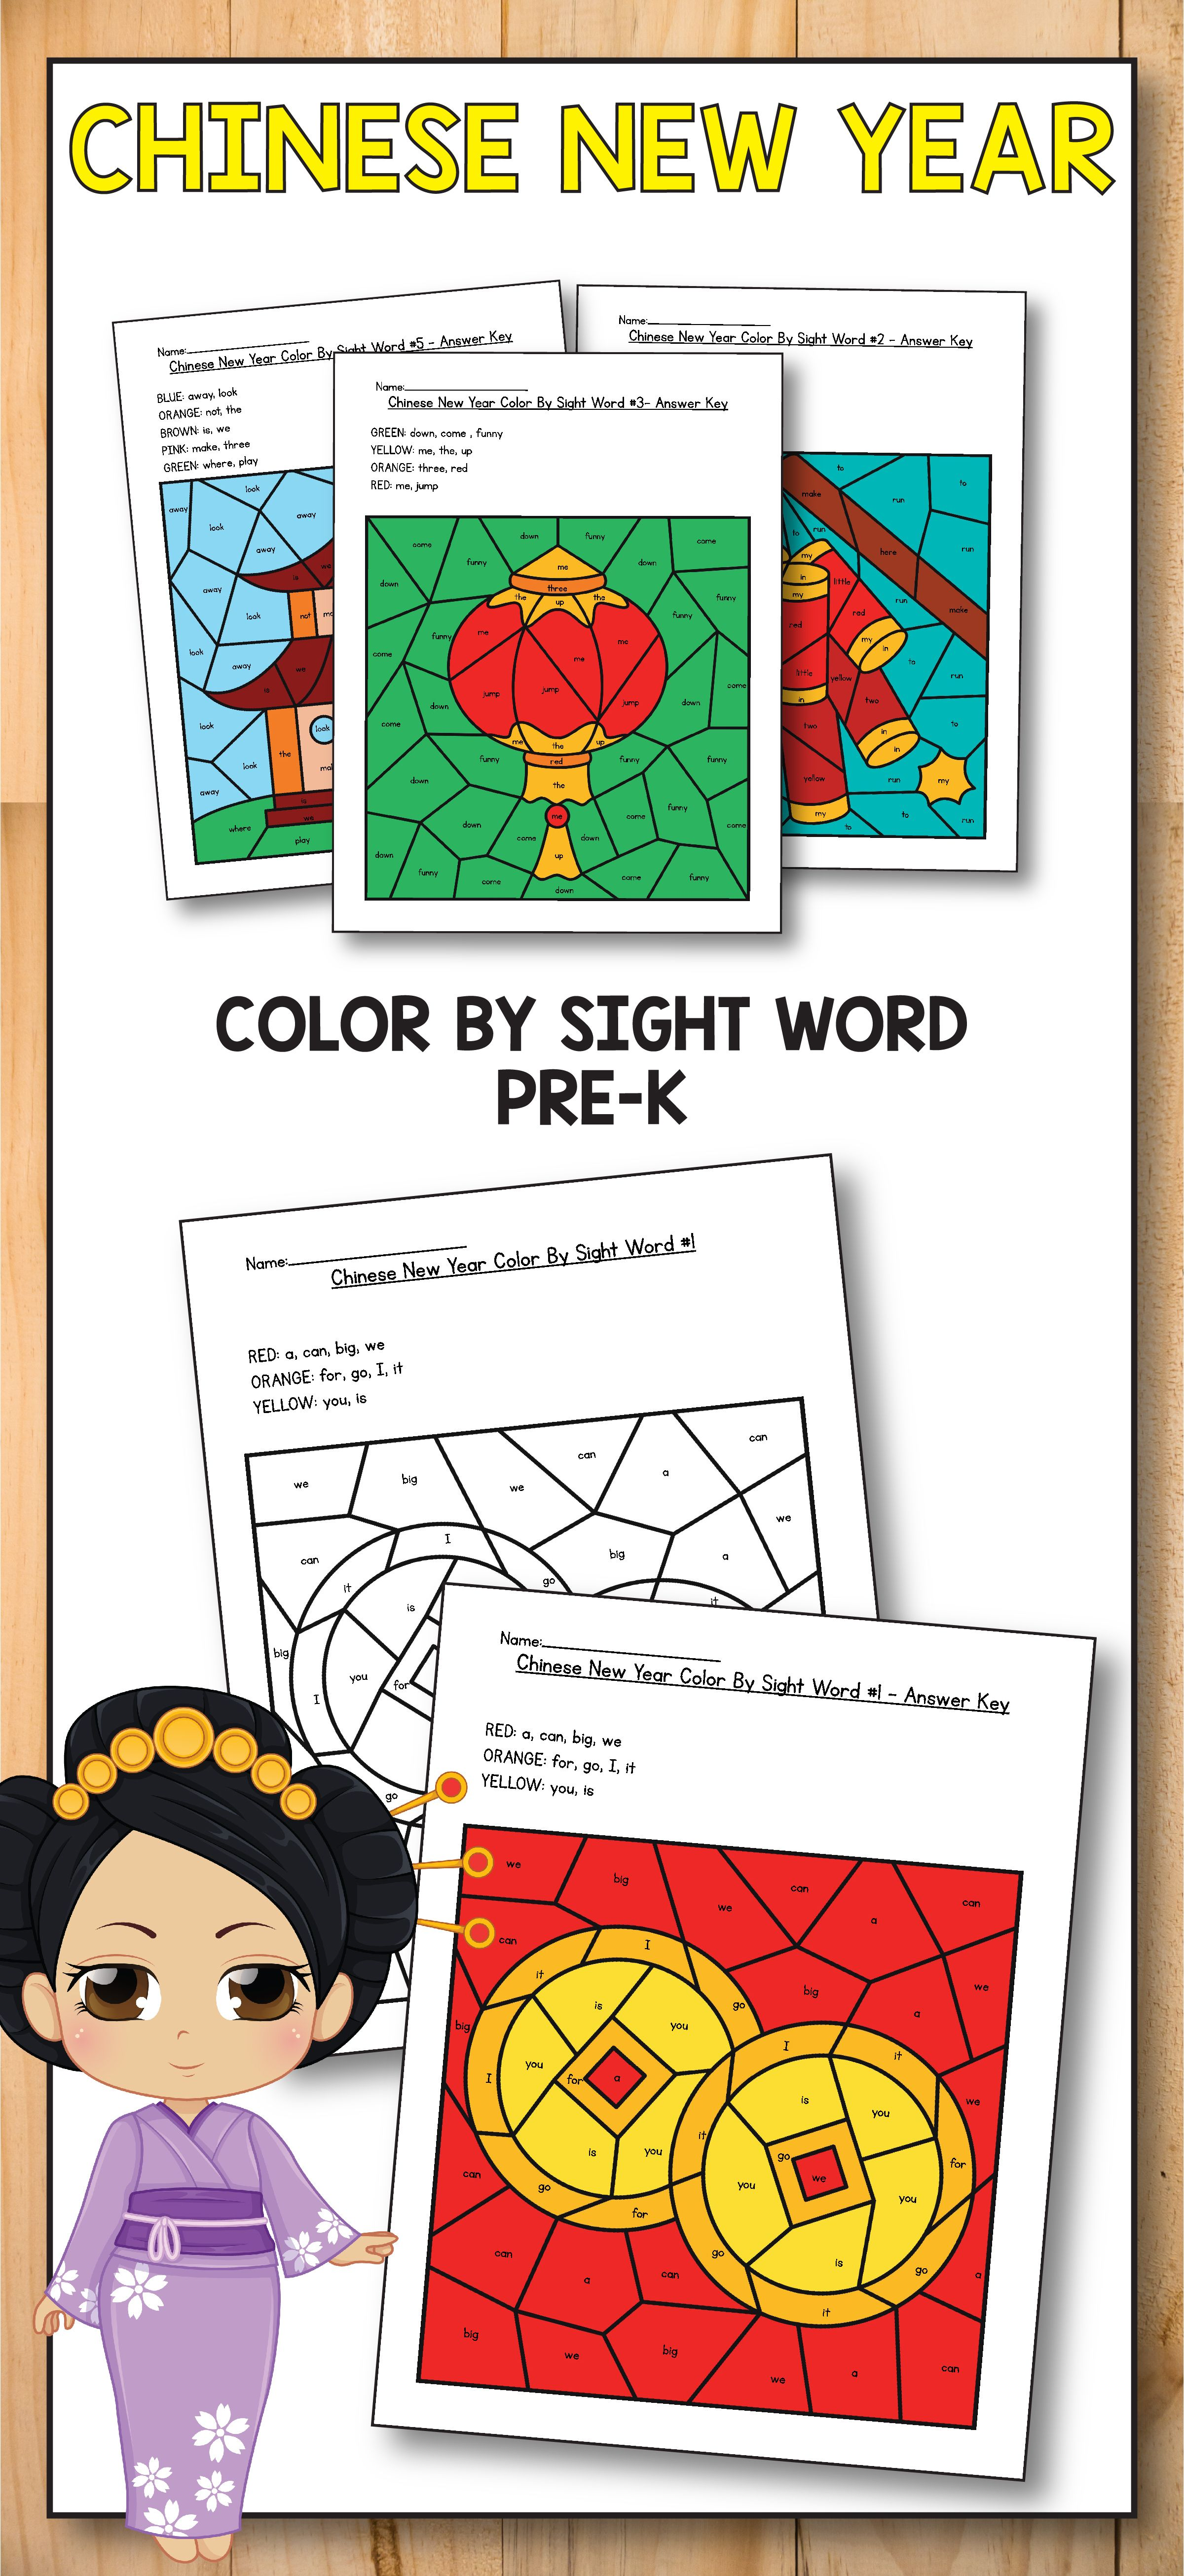 Chinese New Year Activities For Preschool